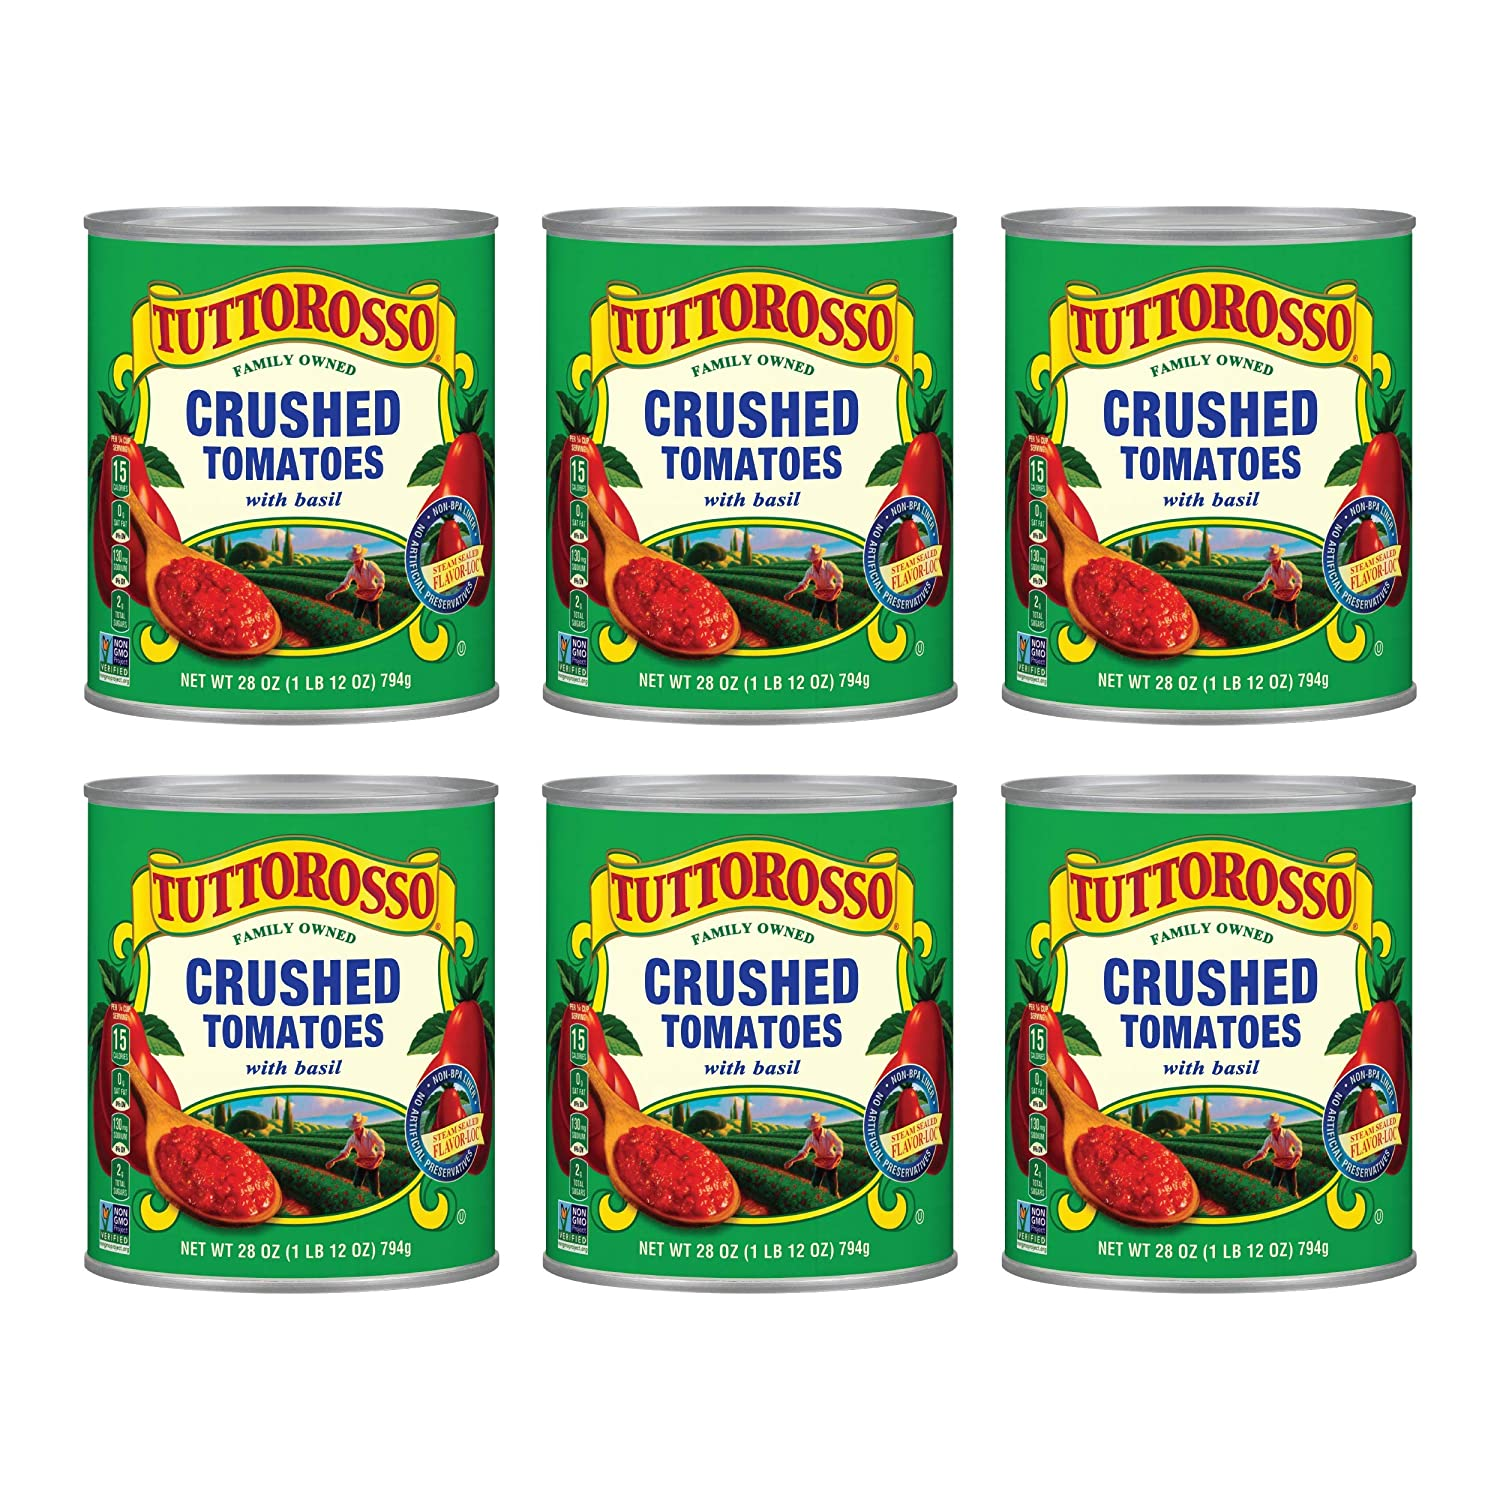 Kansas City Mall Tuttorosso Crushed Max 50% OFF Tomatoes with Basil Vegetari and Free Gluten